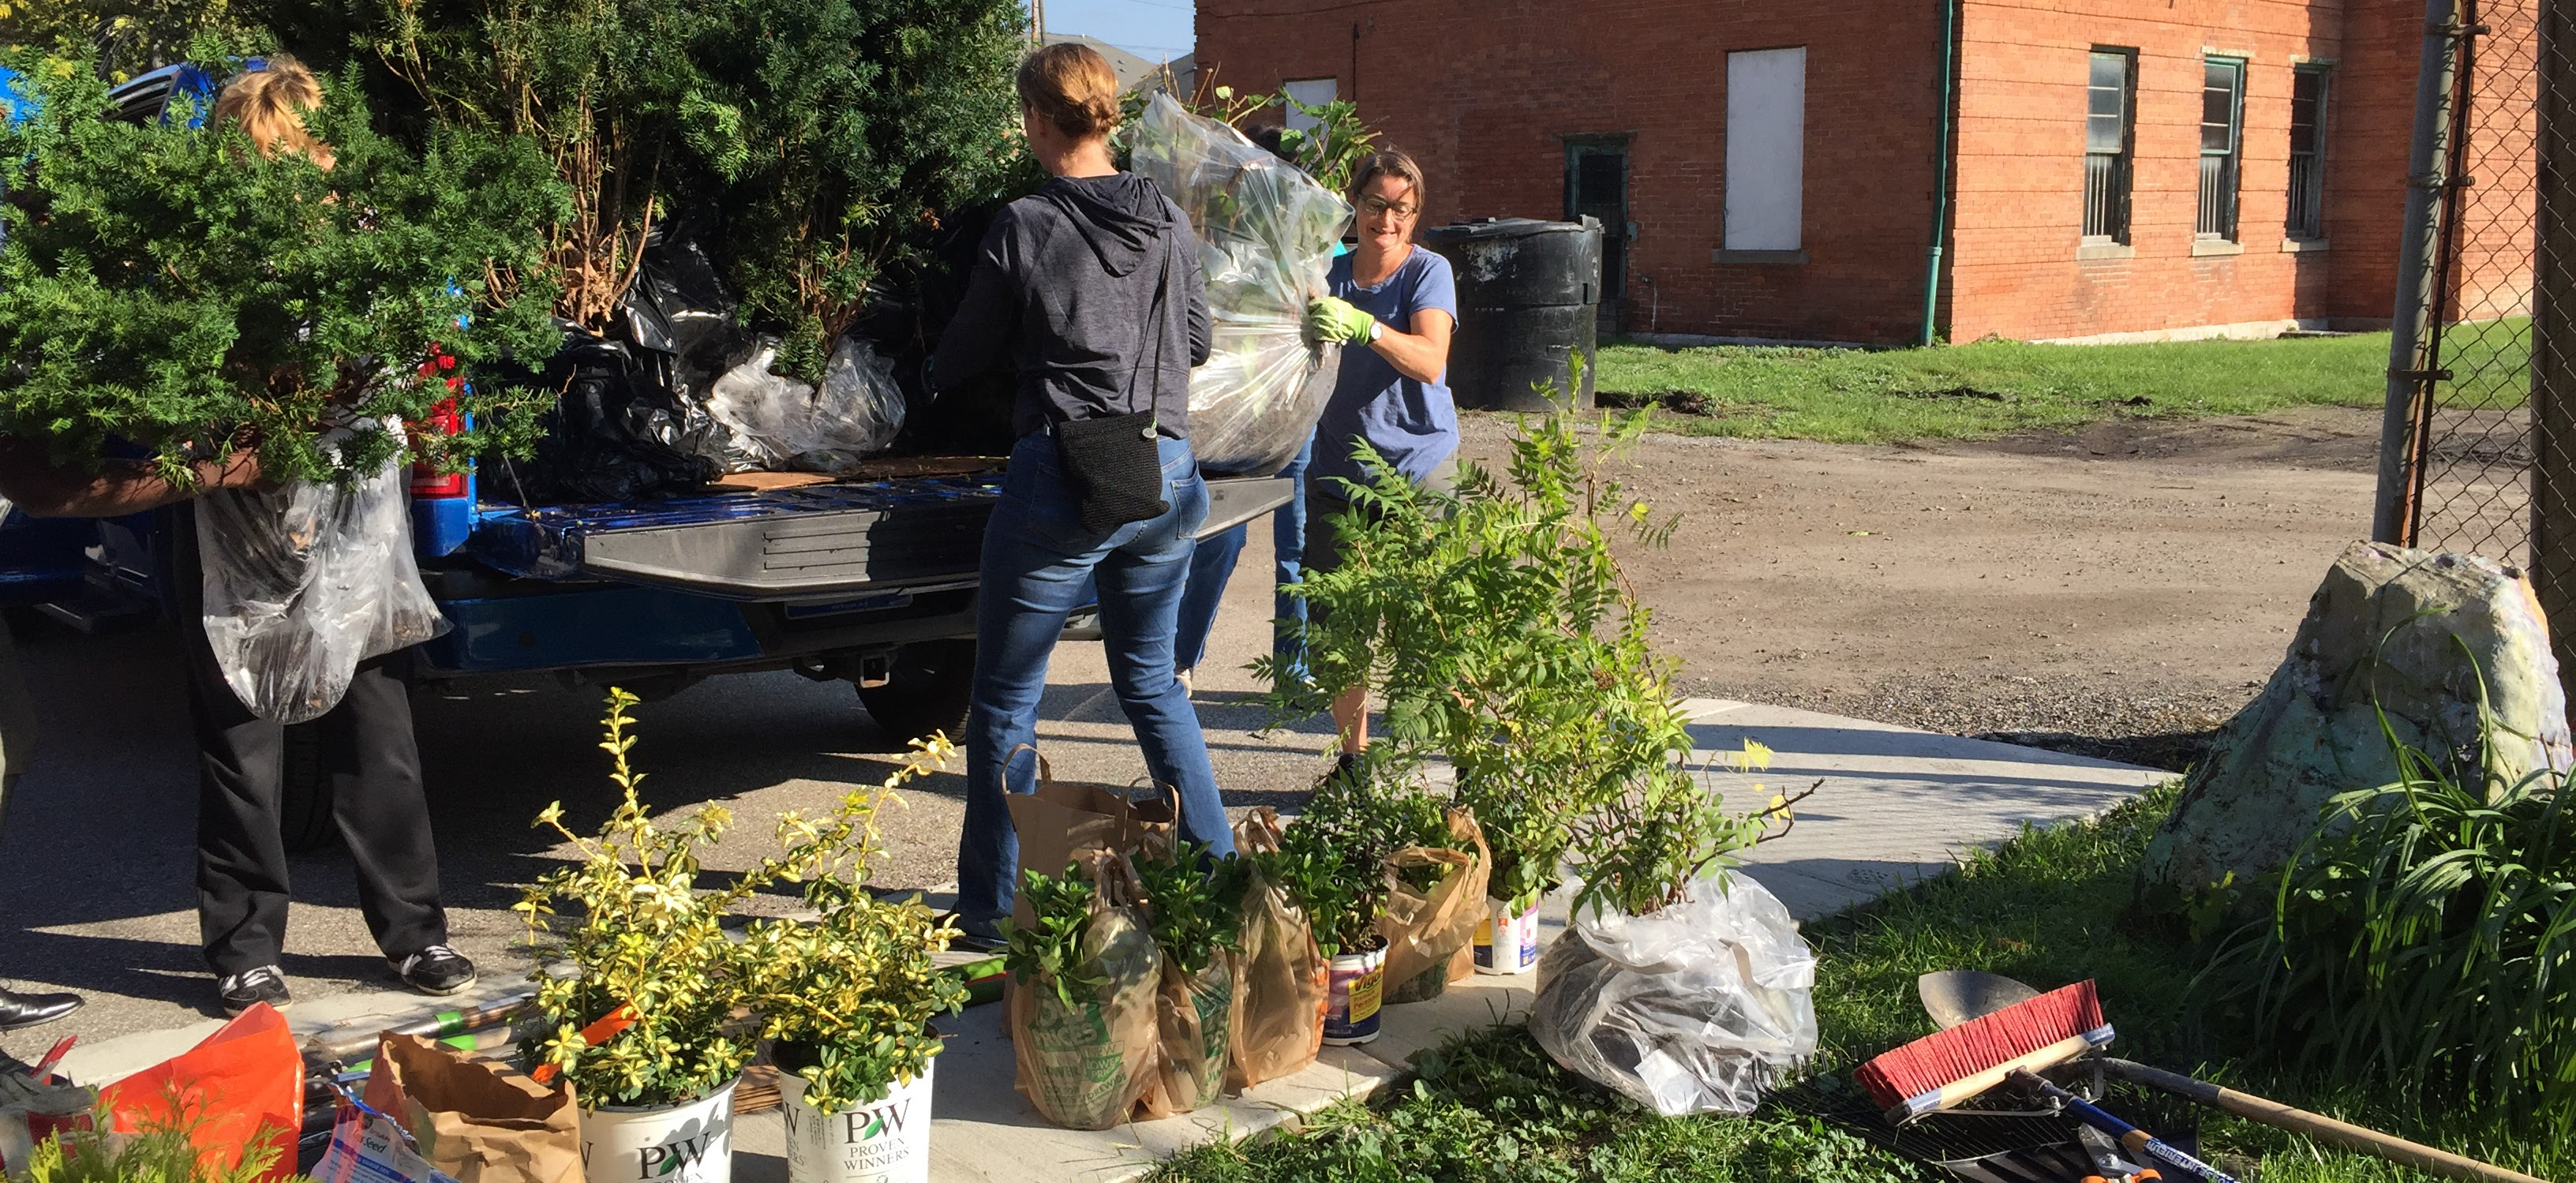 Community Service at the Freedom House